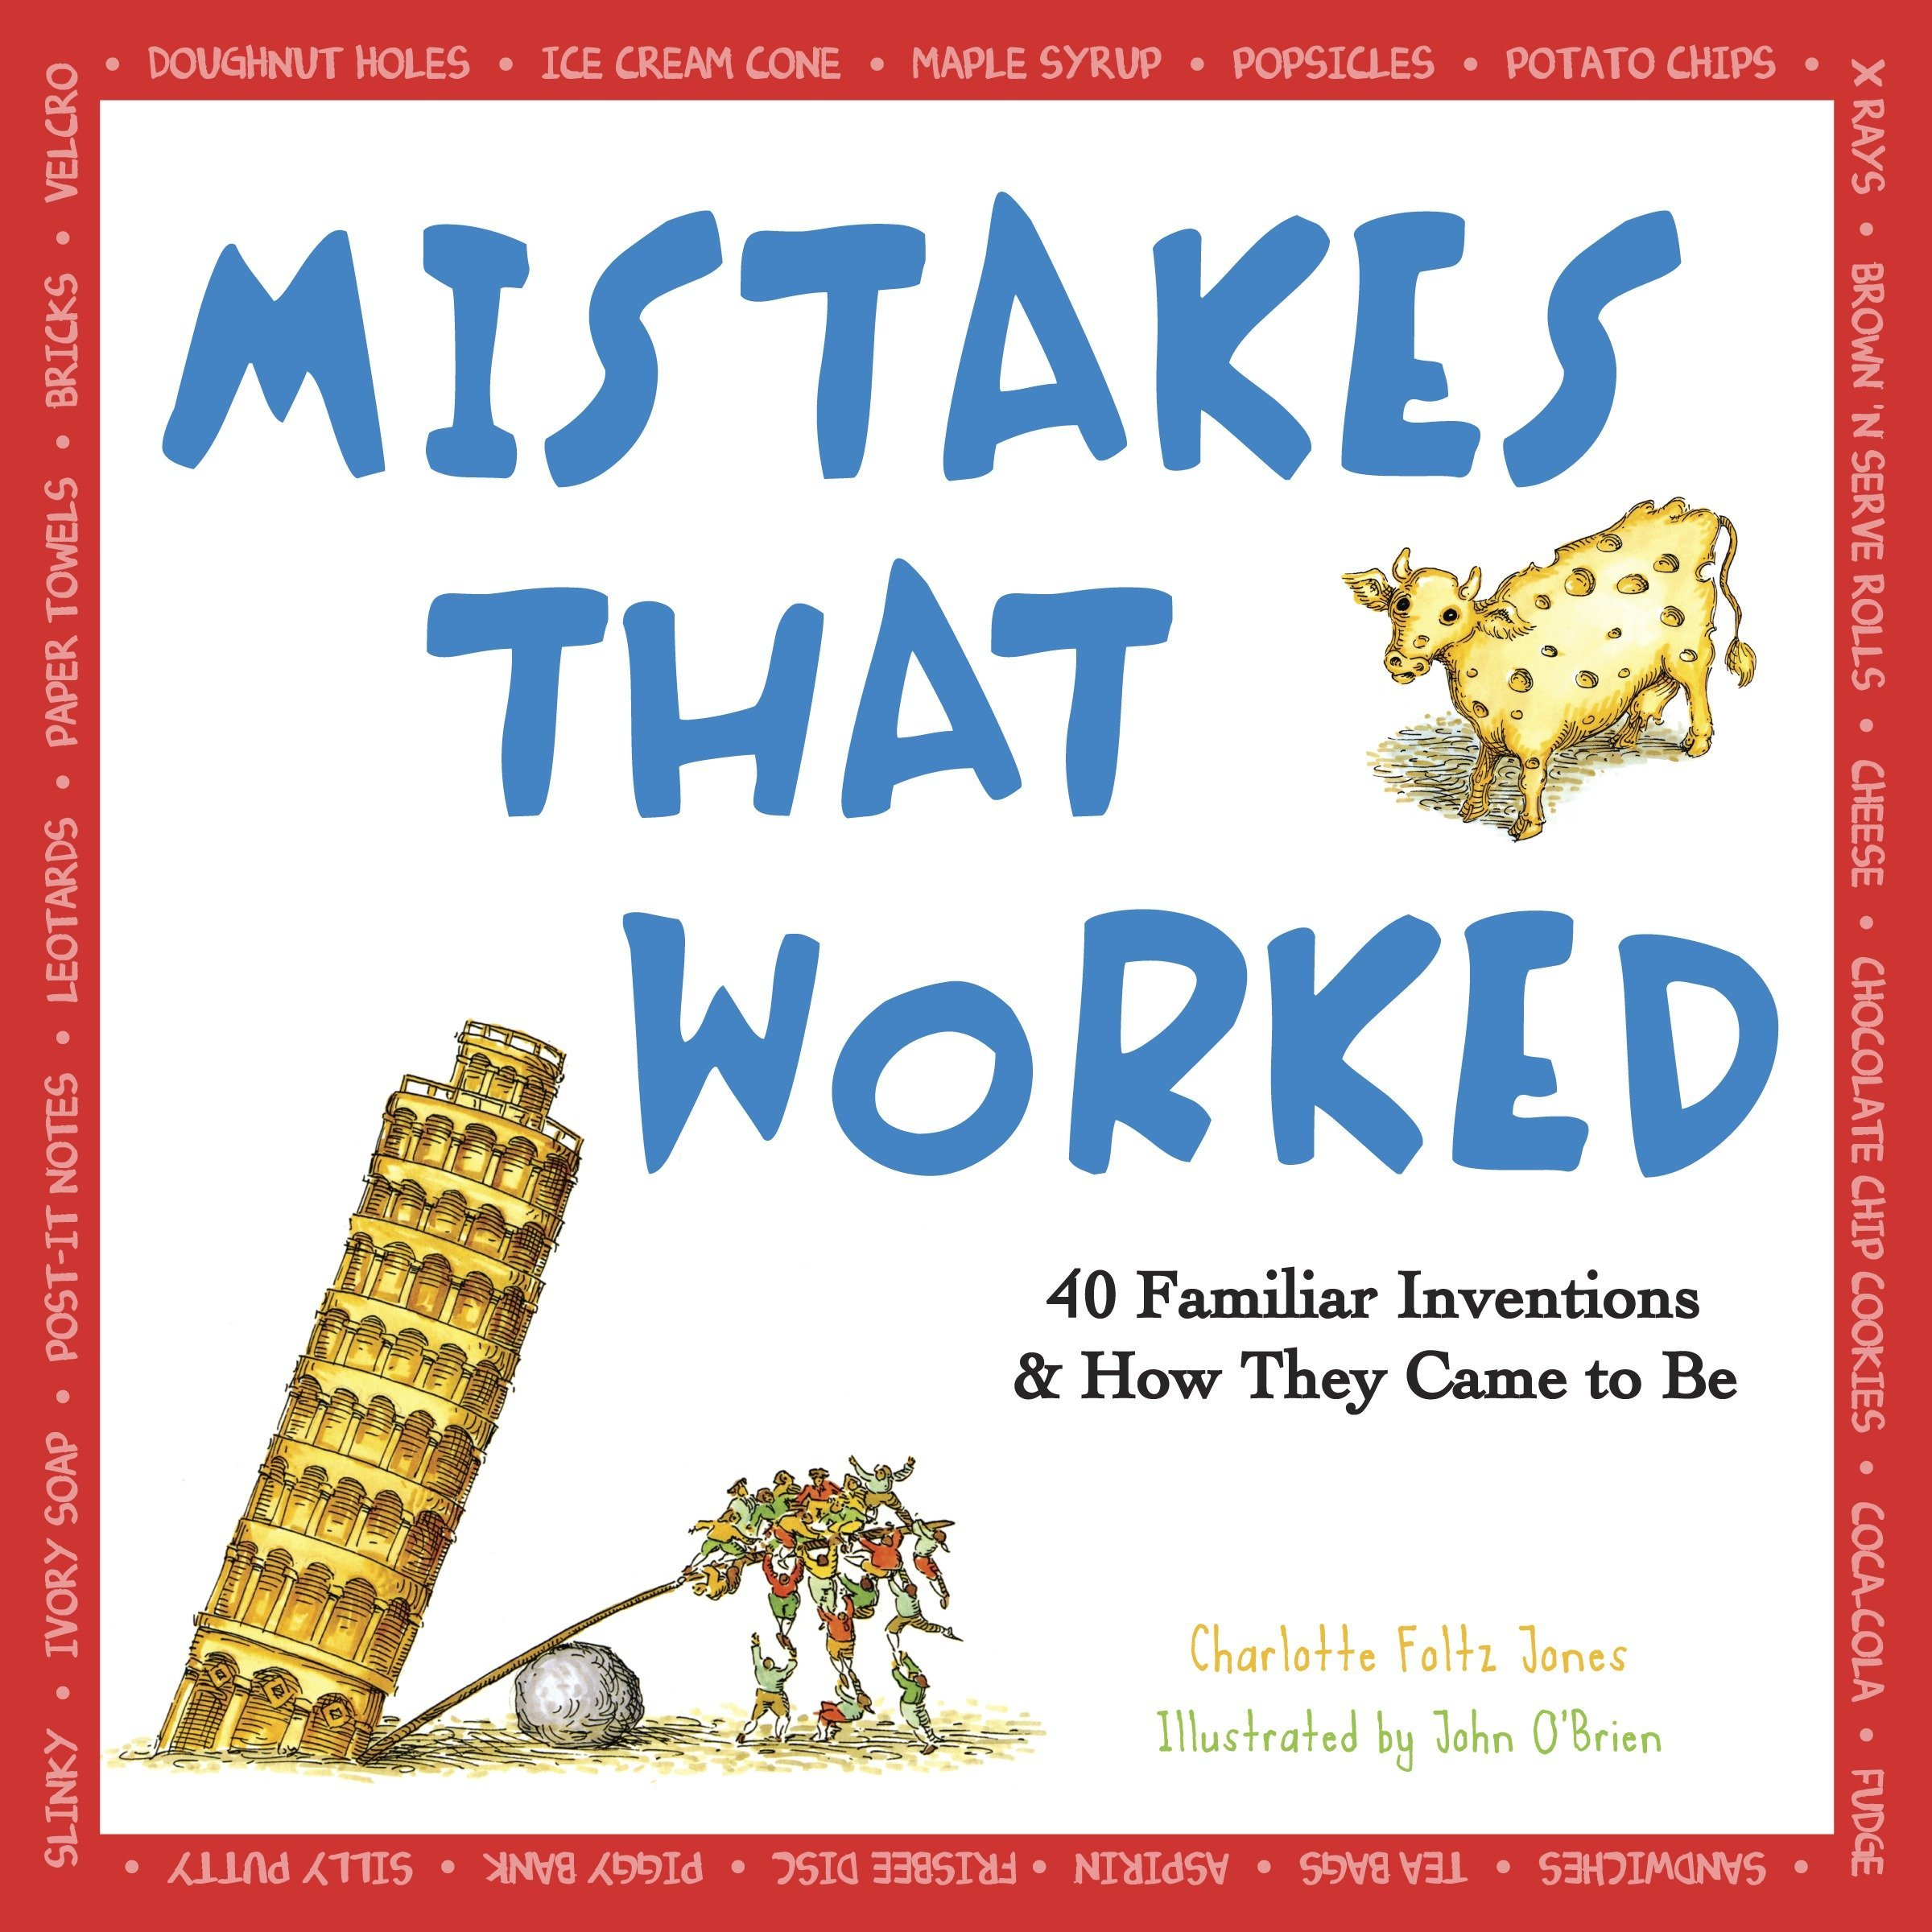 Mistakes That Worked: 40 Familiar Inventions & How They Came to Be by Doubleday Books for Young Readers